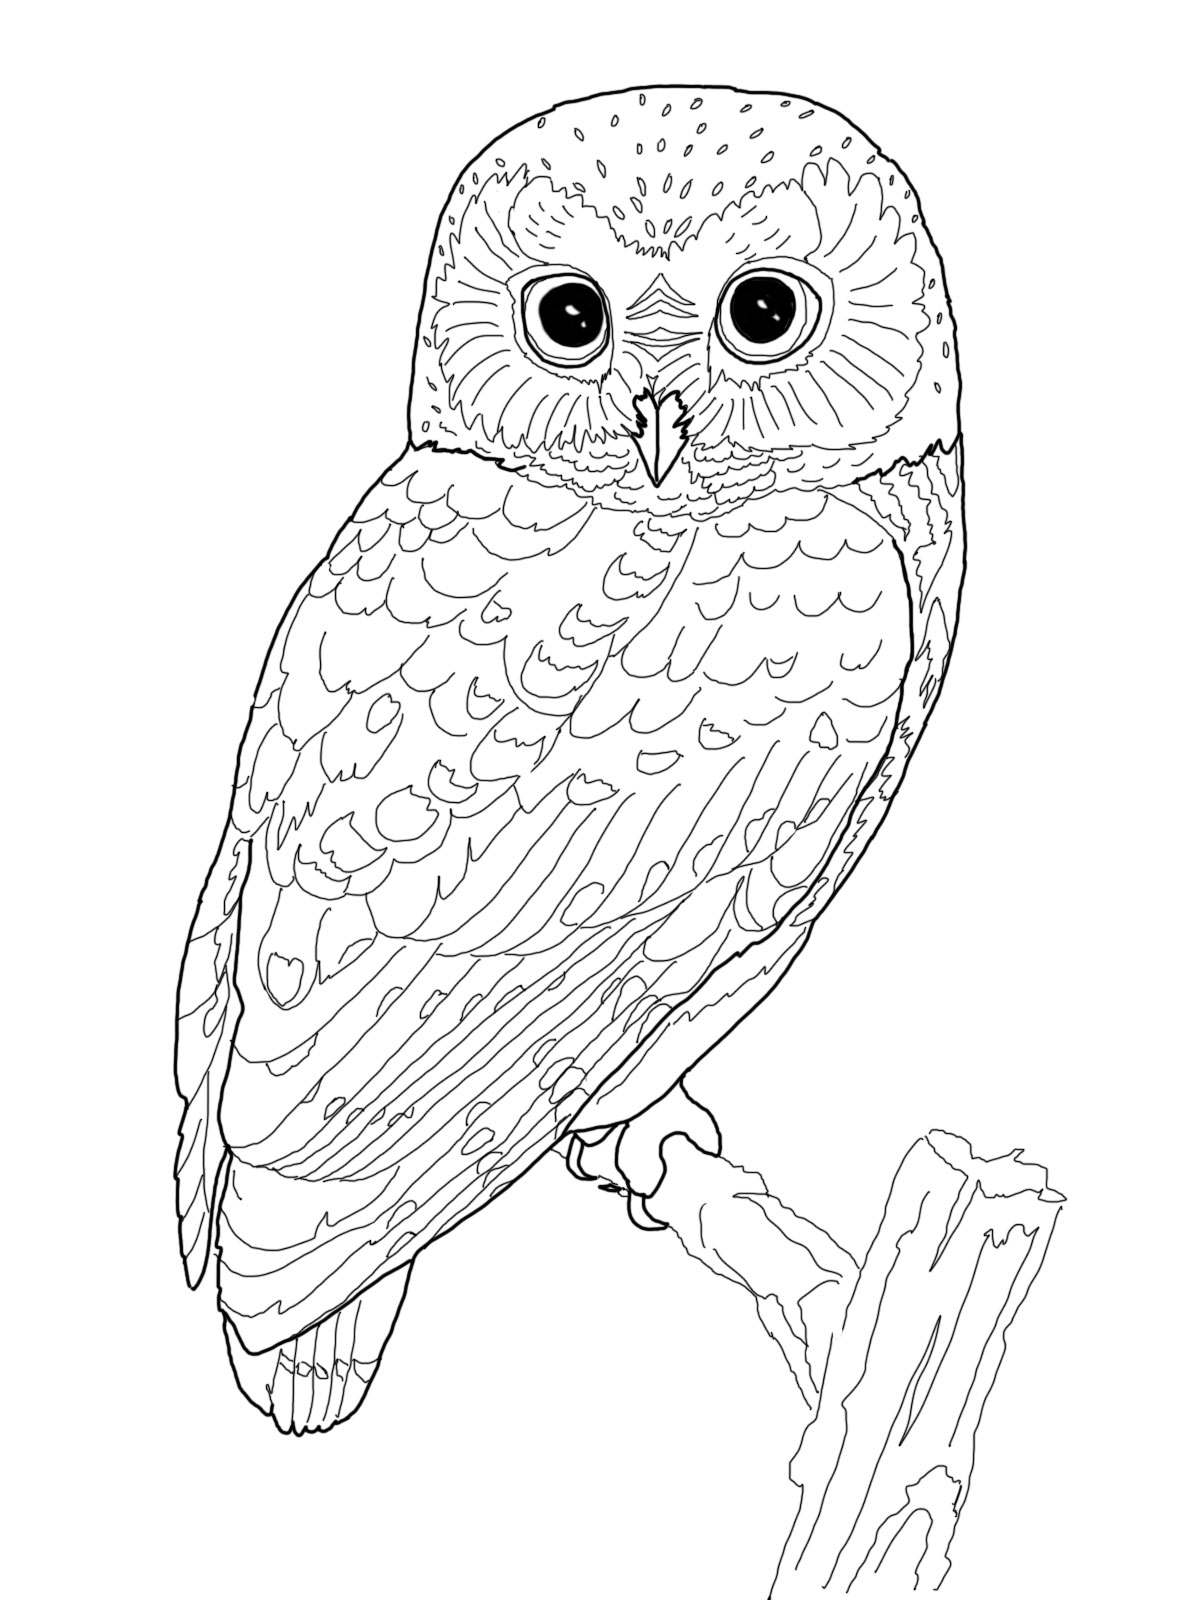 coloring pages owl owl coloring pages owl coloring pages owl coloring pages